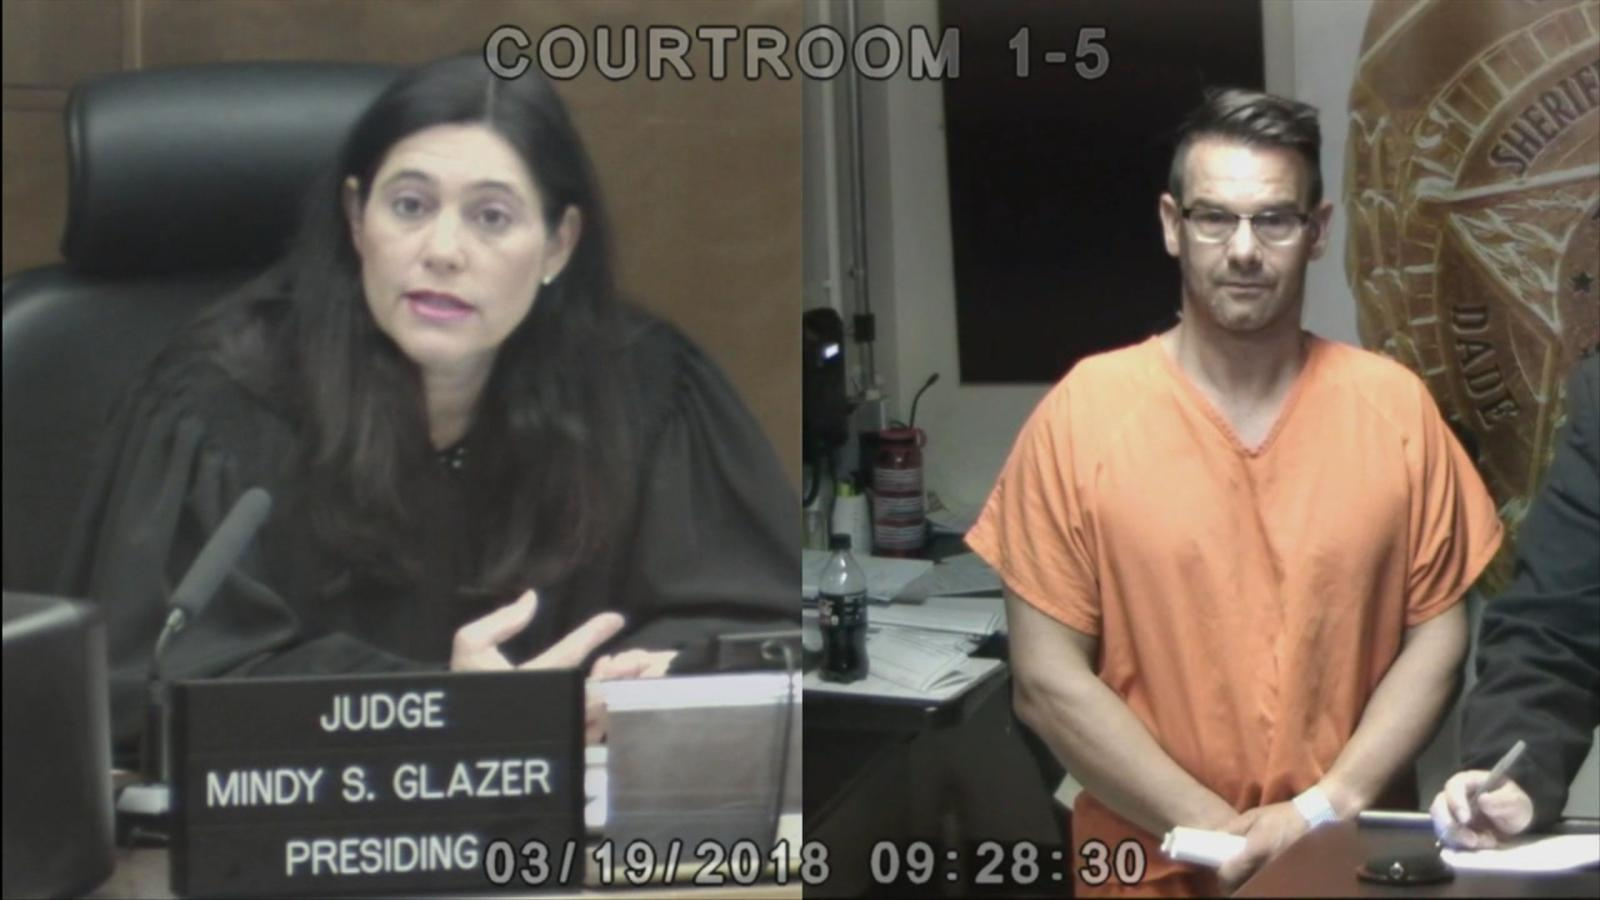 VIDEO: Kevin Easterly, 45, is agreeing to be extradited to Pennsylvania, he said in a brief court appearance in Miami today.